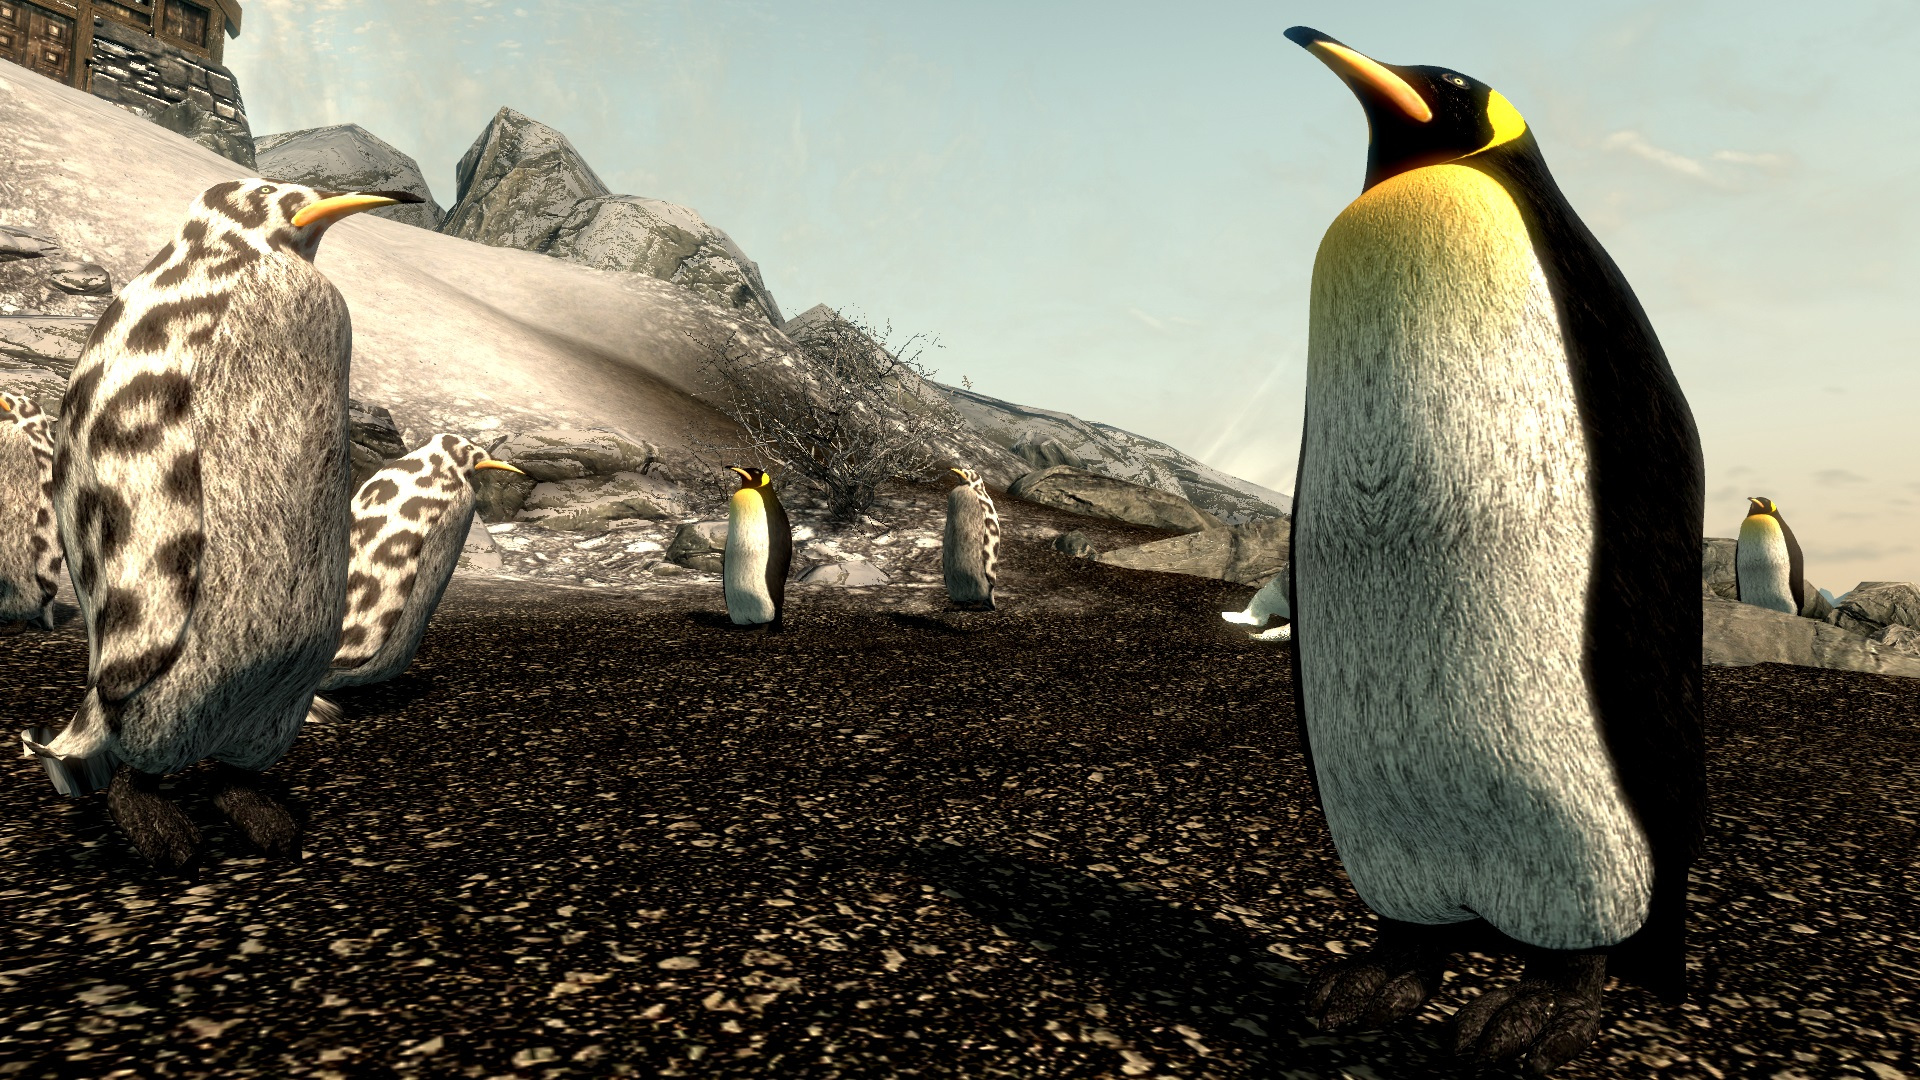 Fill Skyrim with penguins using this mod